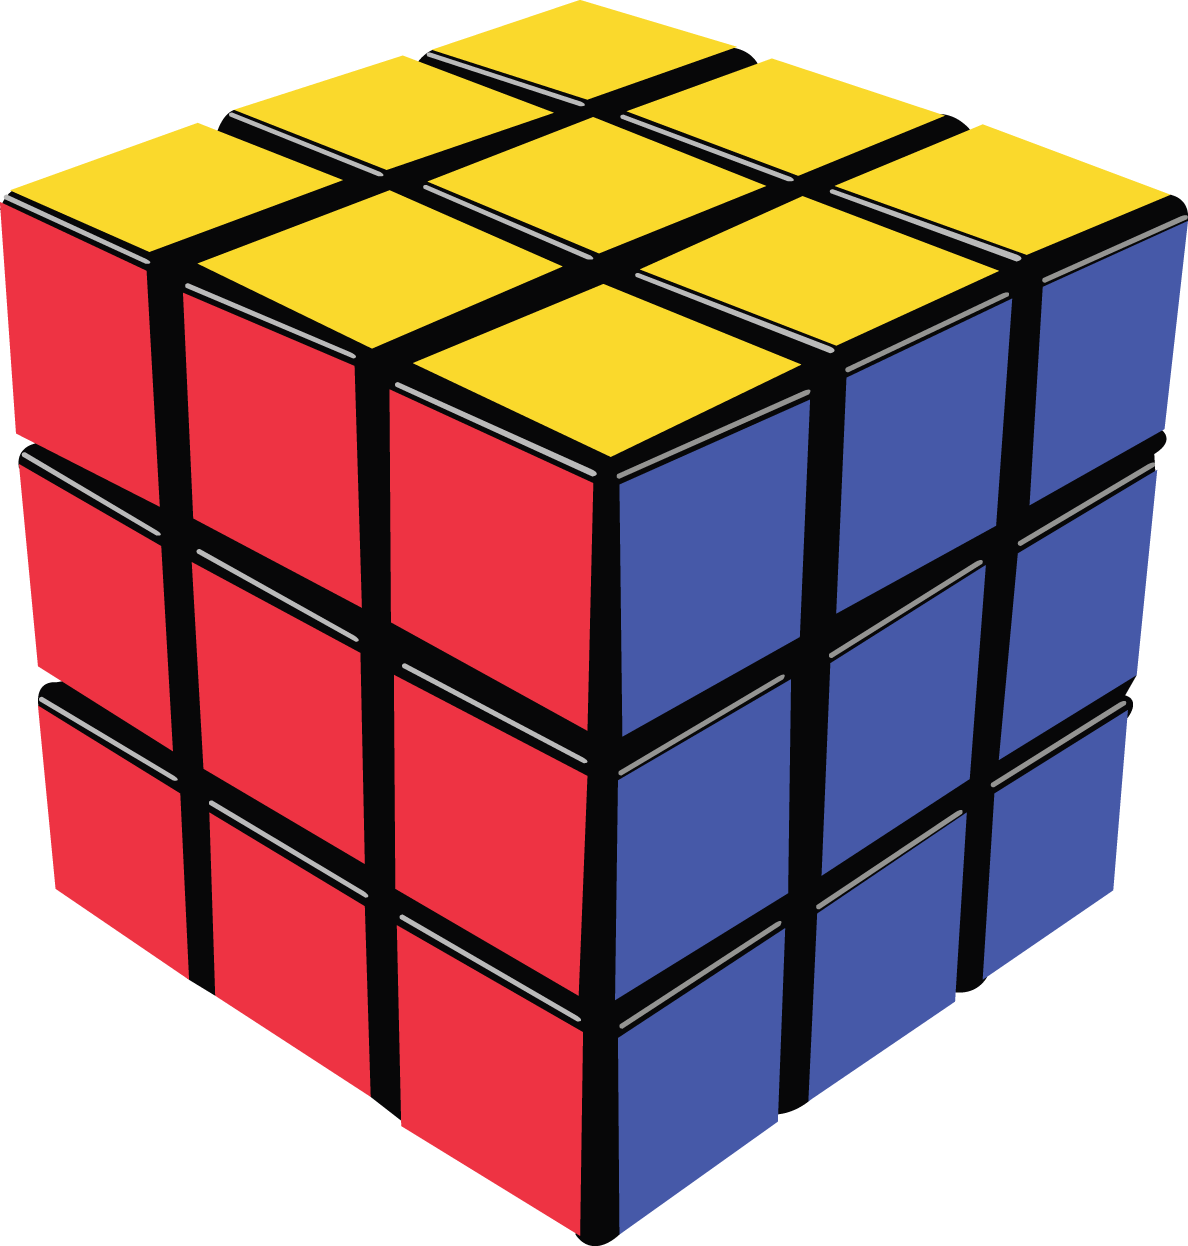 Rubik s cube png. One clipart cuboid